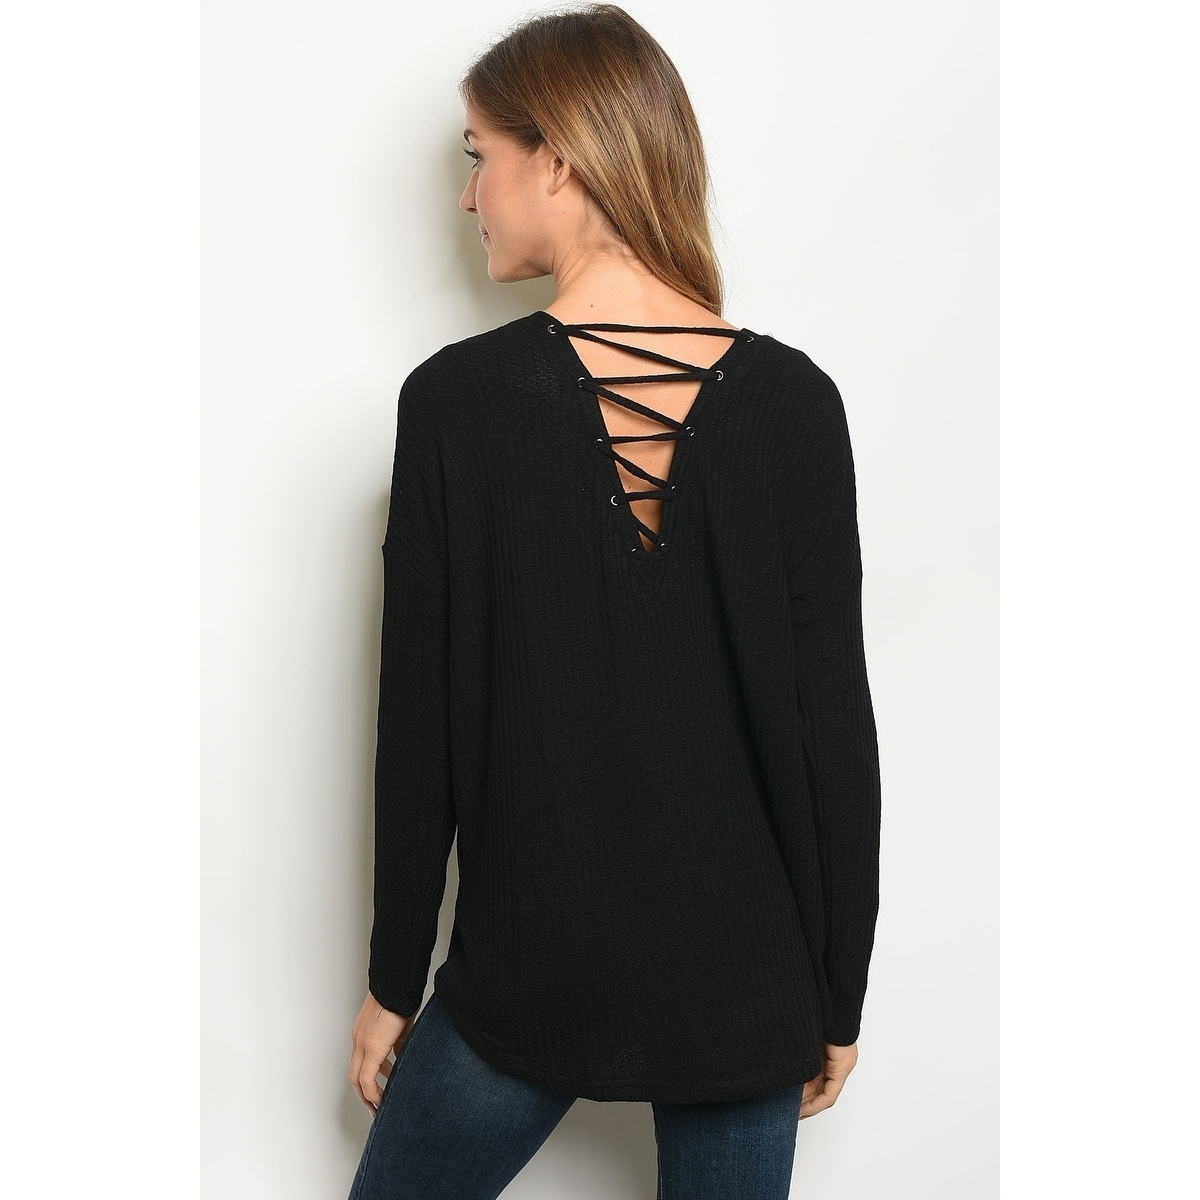 9b0a79de7e Shop JED Women s Long Sleeve Waffle Knit Lace-Up Top - On Sale - Free  Shipping On Orders Over  45 - Overstock - 22701574